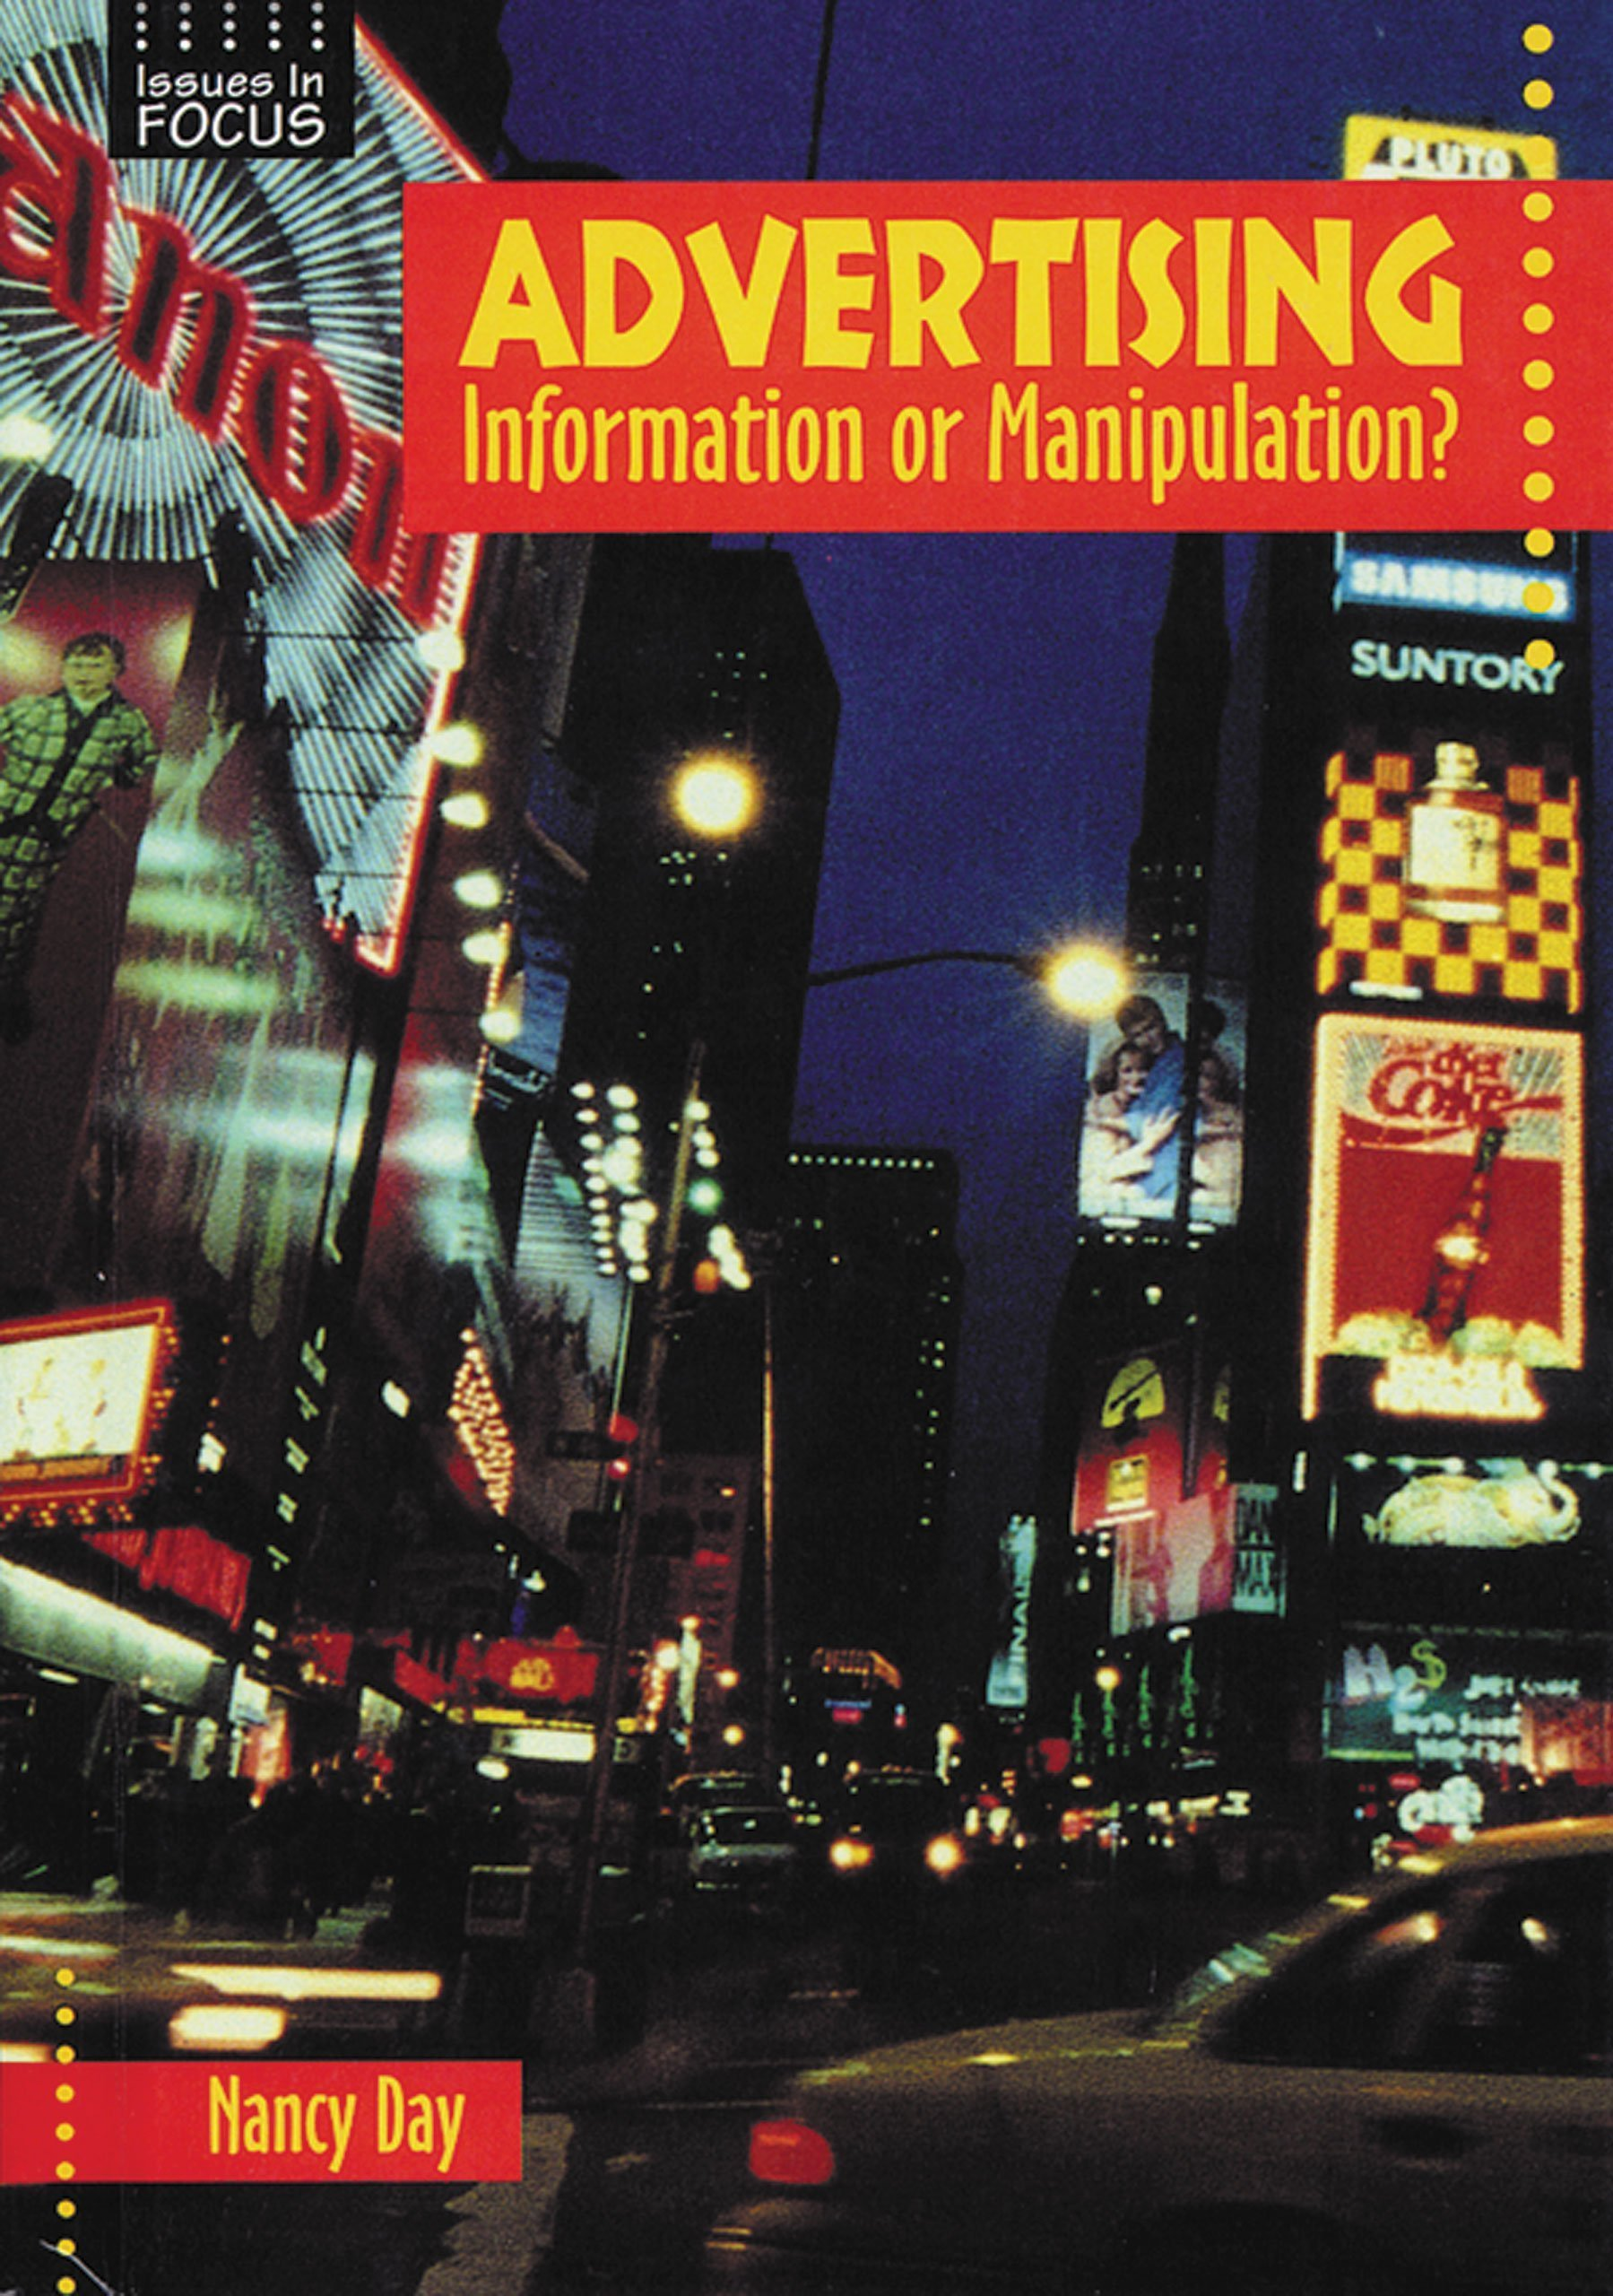 advertising information or manipulation issues in focus nancy advertising information or manipulation issues in focus nancy raines day 9780766011069 amazon com books